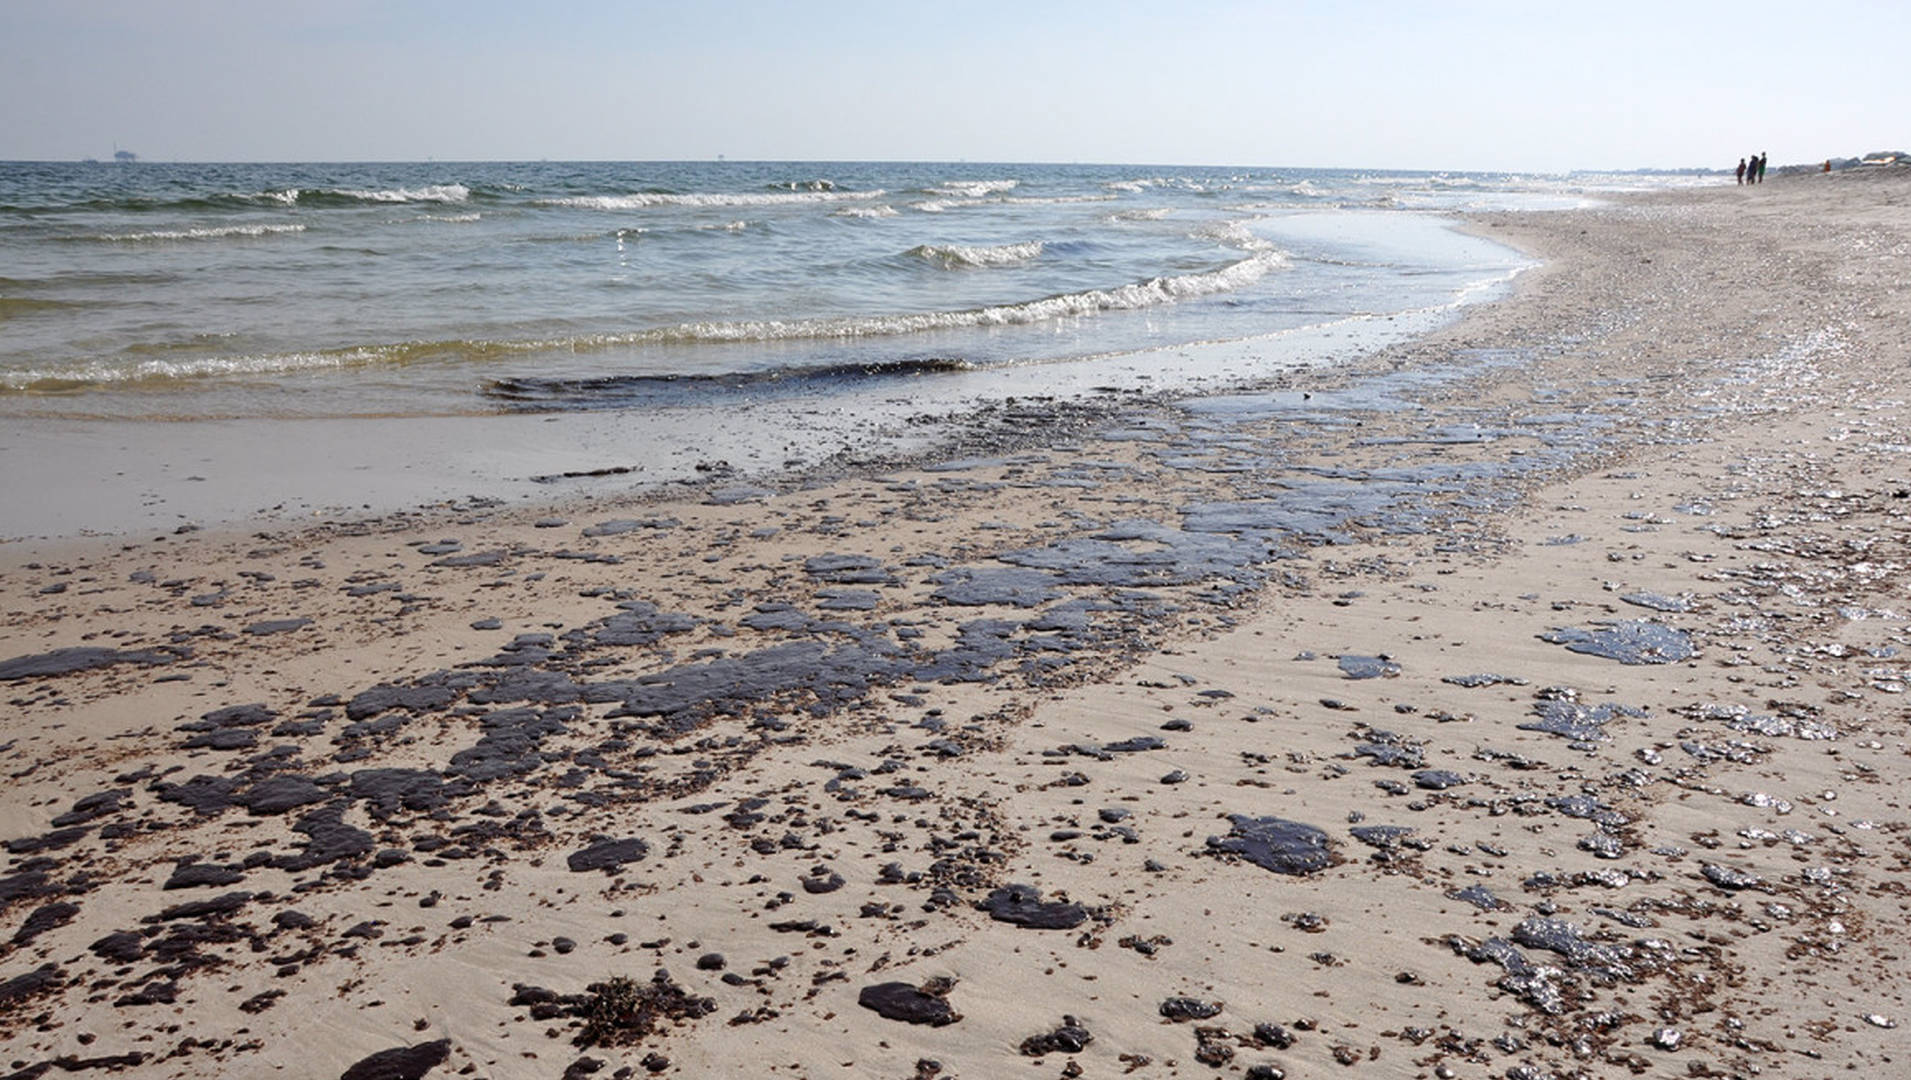 gulf spill Storms in the gulf dispersed much of the oil from the surface, so the giant slick can no longer be seen the spill came during a public comment period on the obama administration's plan to add 10 new offshore leases in the gulf of mexico.